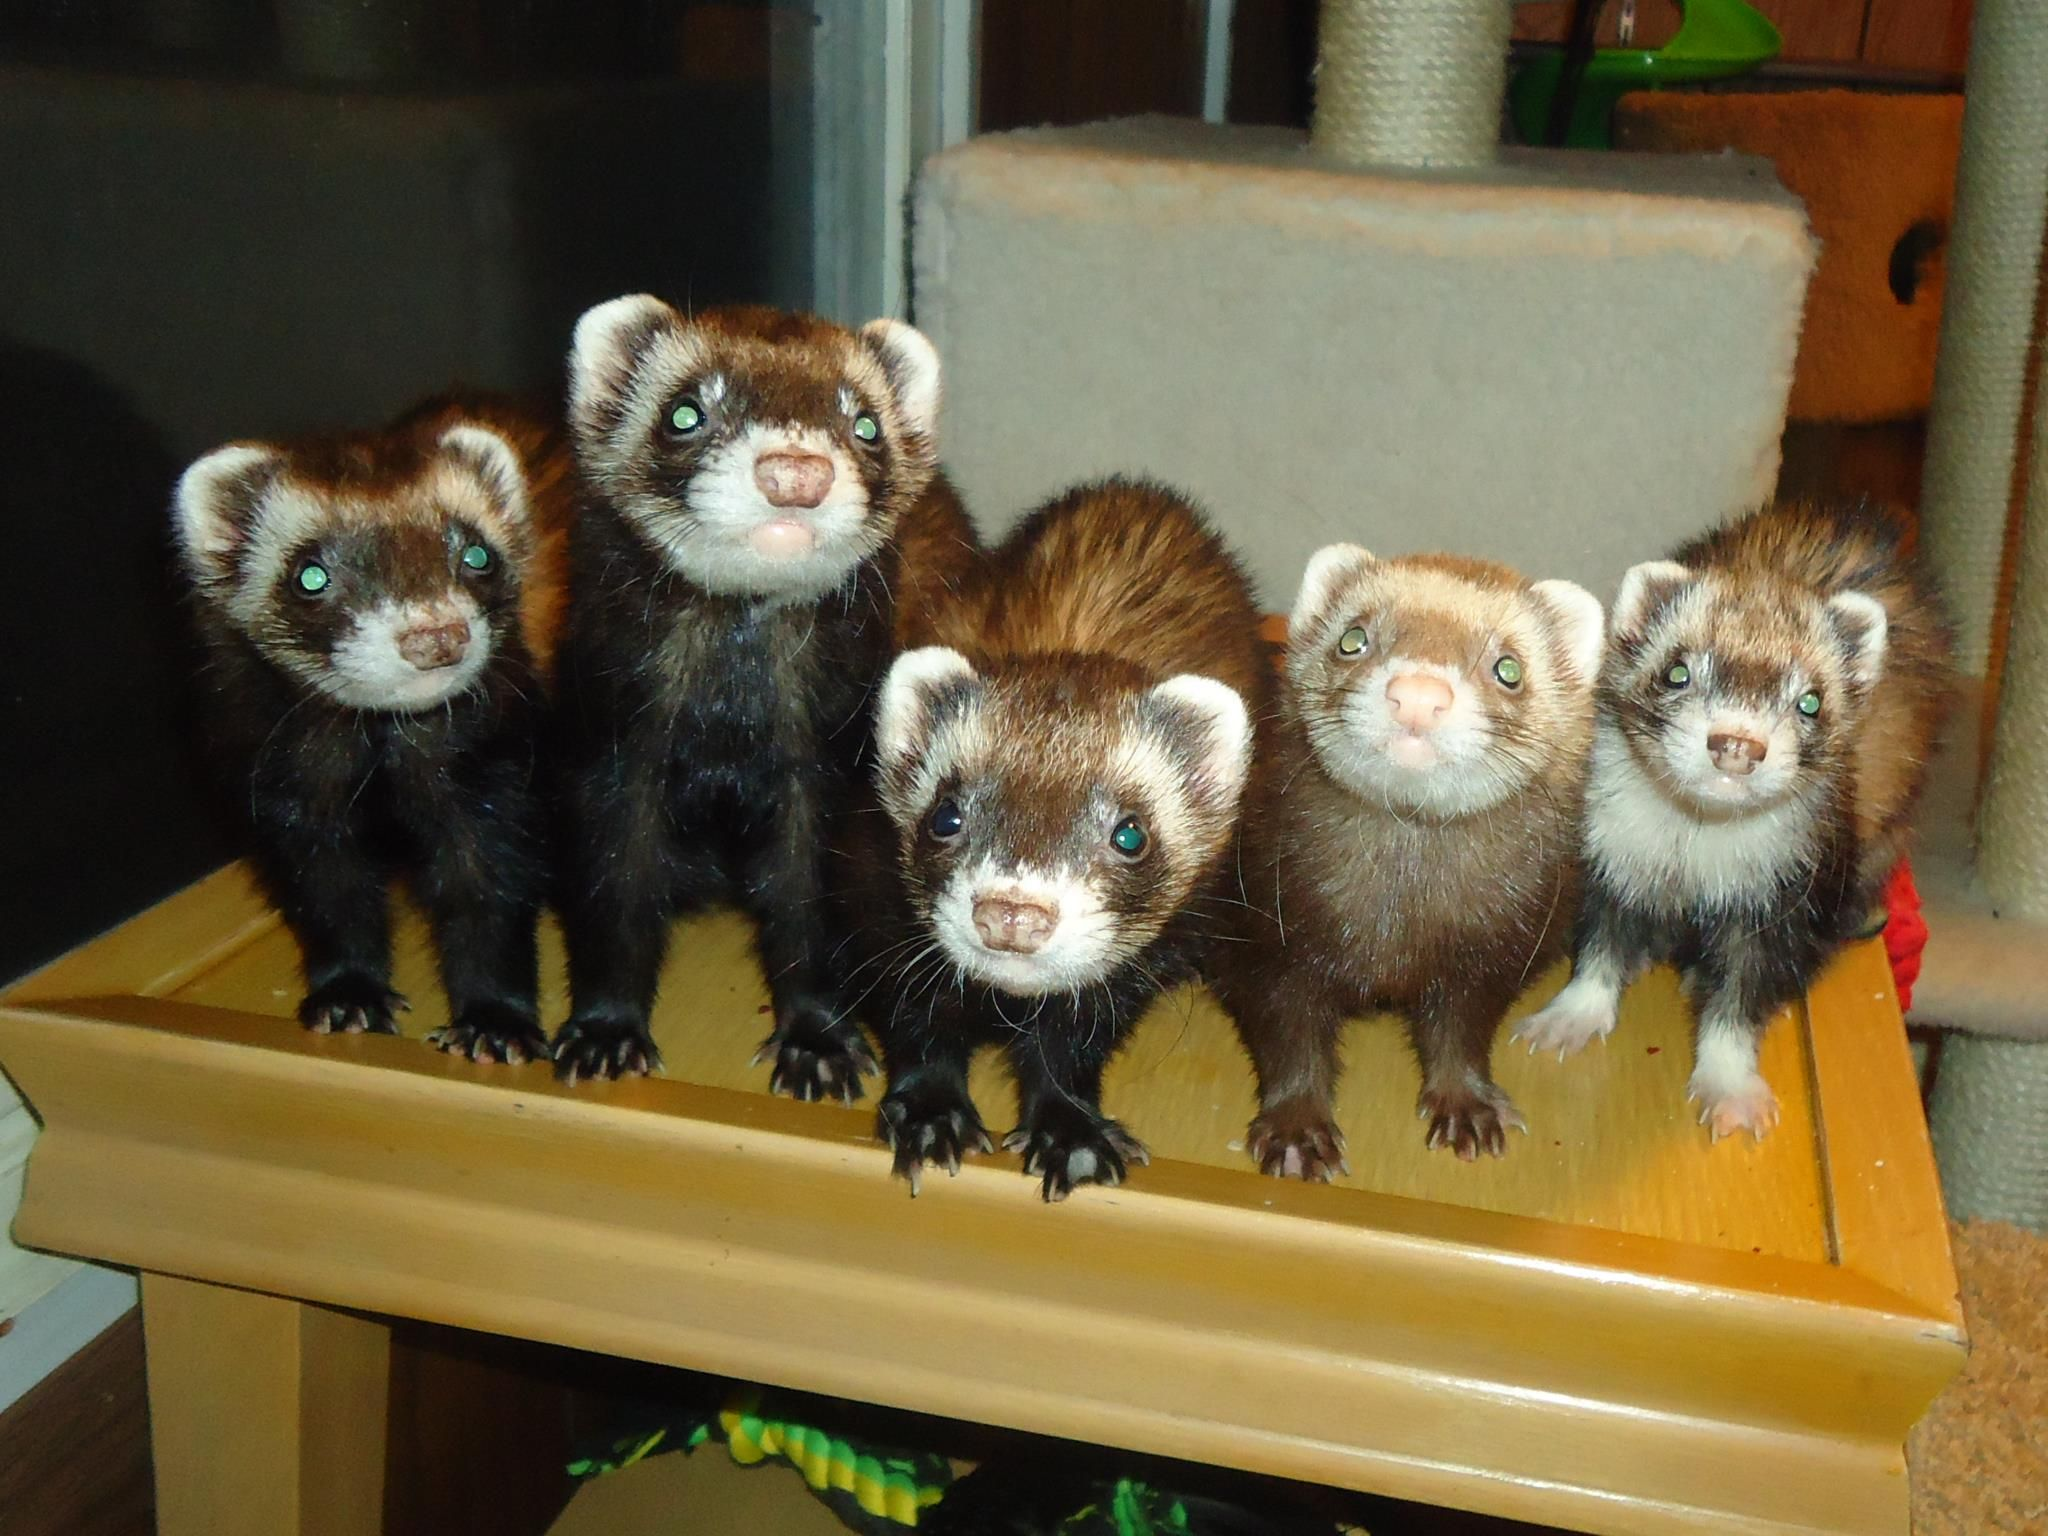 So Many Adorable Ferret Faces In One Photo Ferret Cute Ferrets